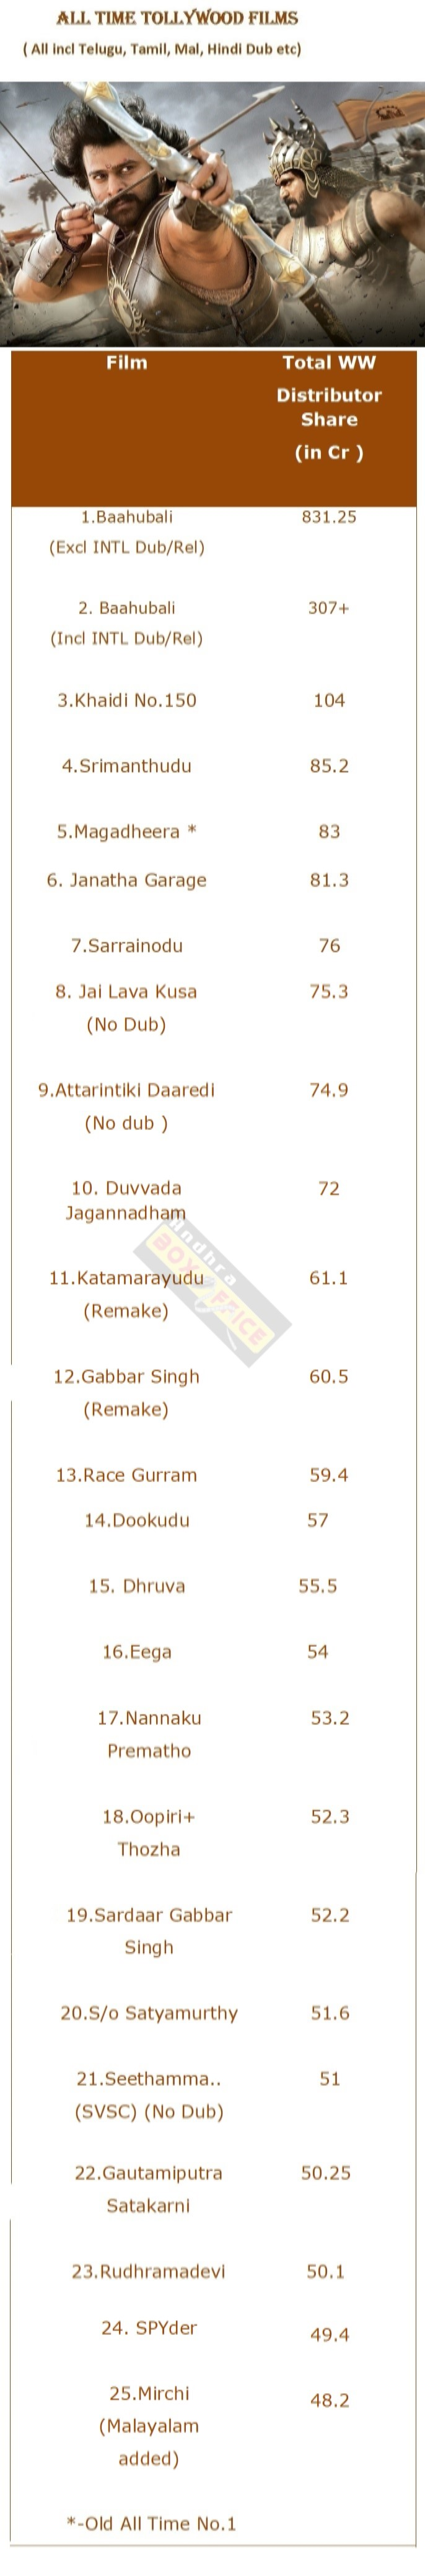 All Time Top Tollywood s incl Dub ABO Its Box fice Forum